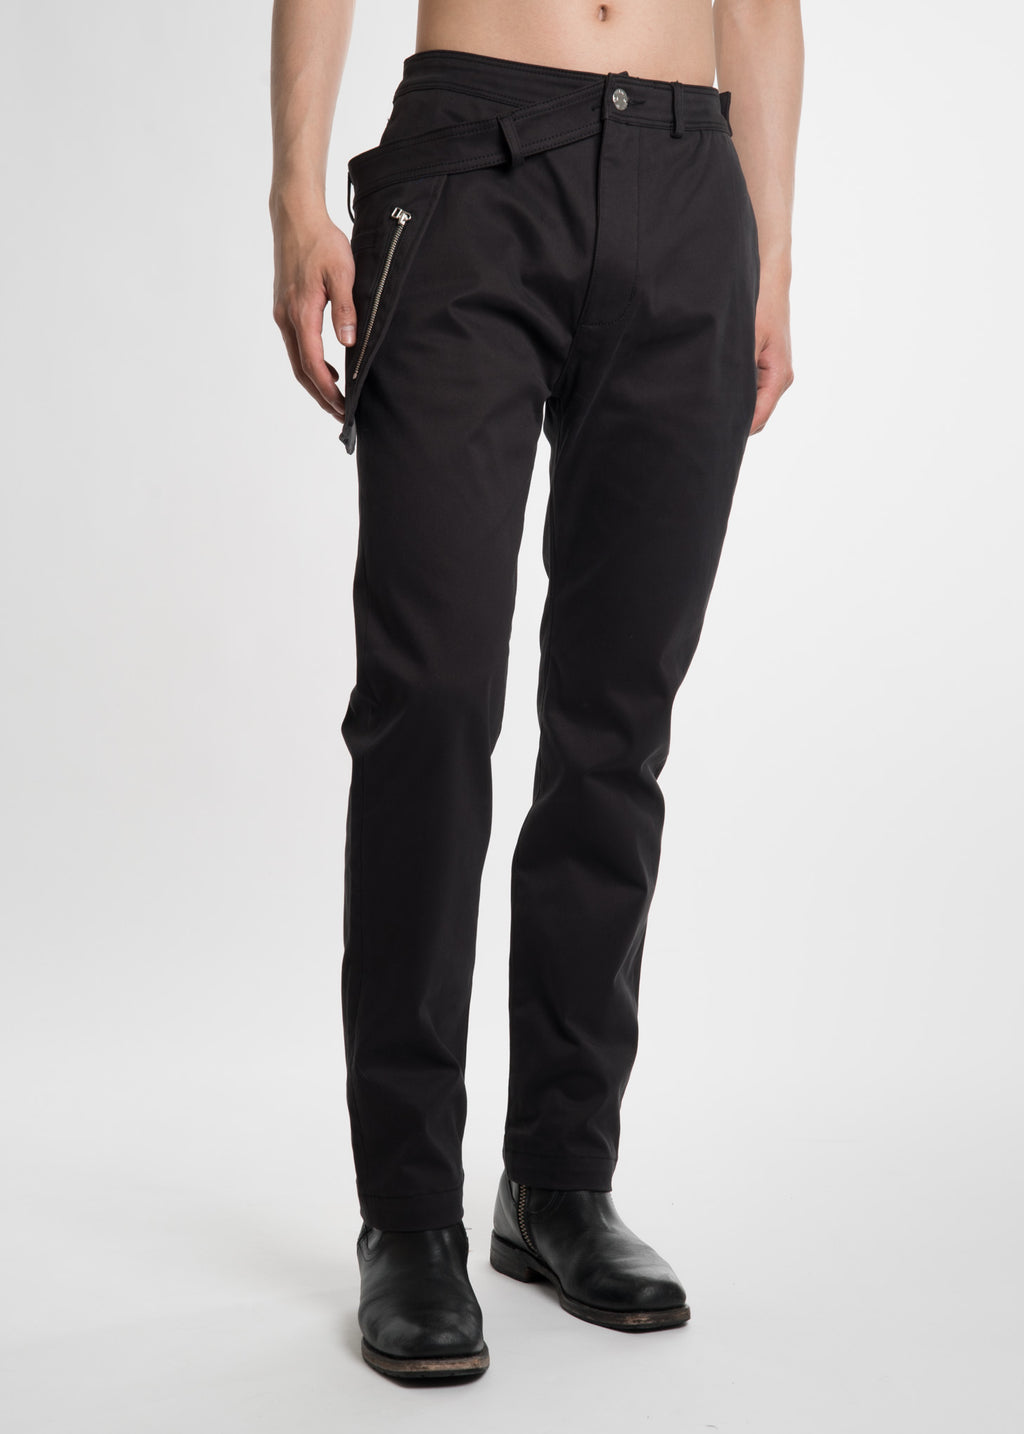 Black WB Pocket Pant